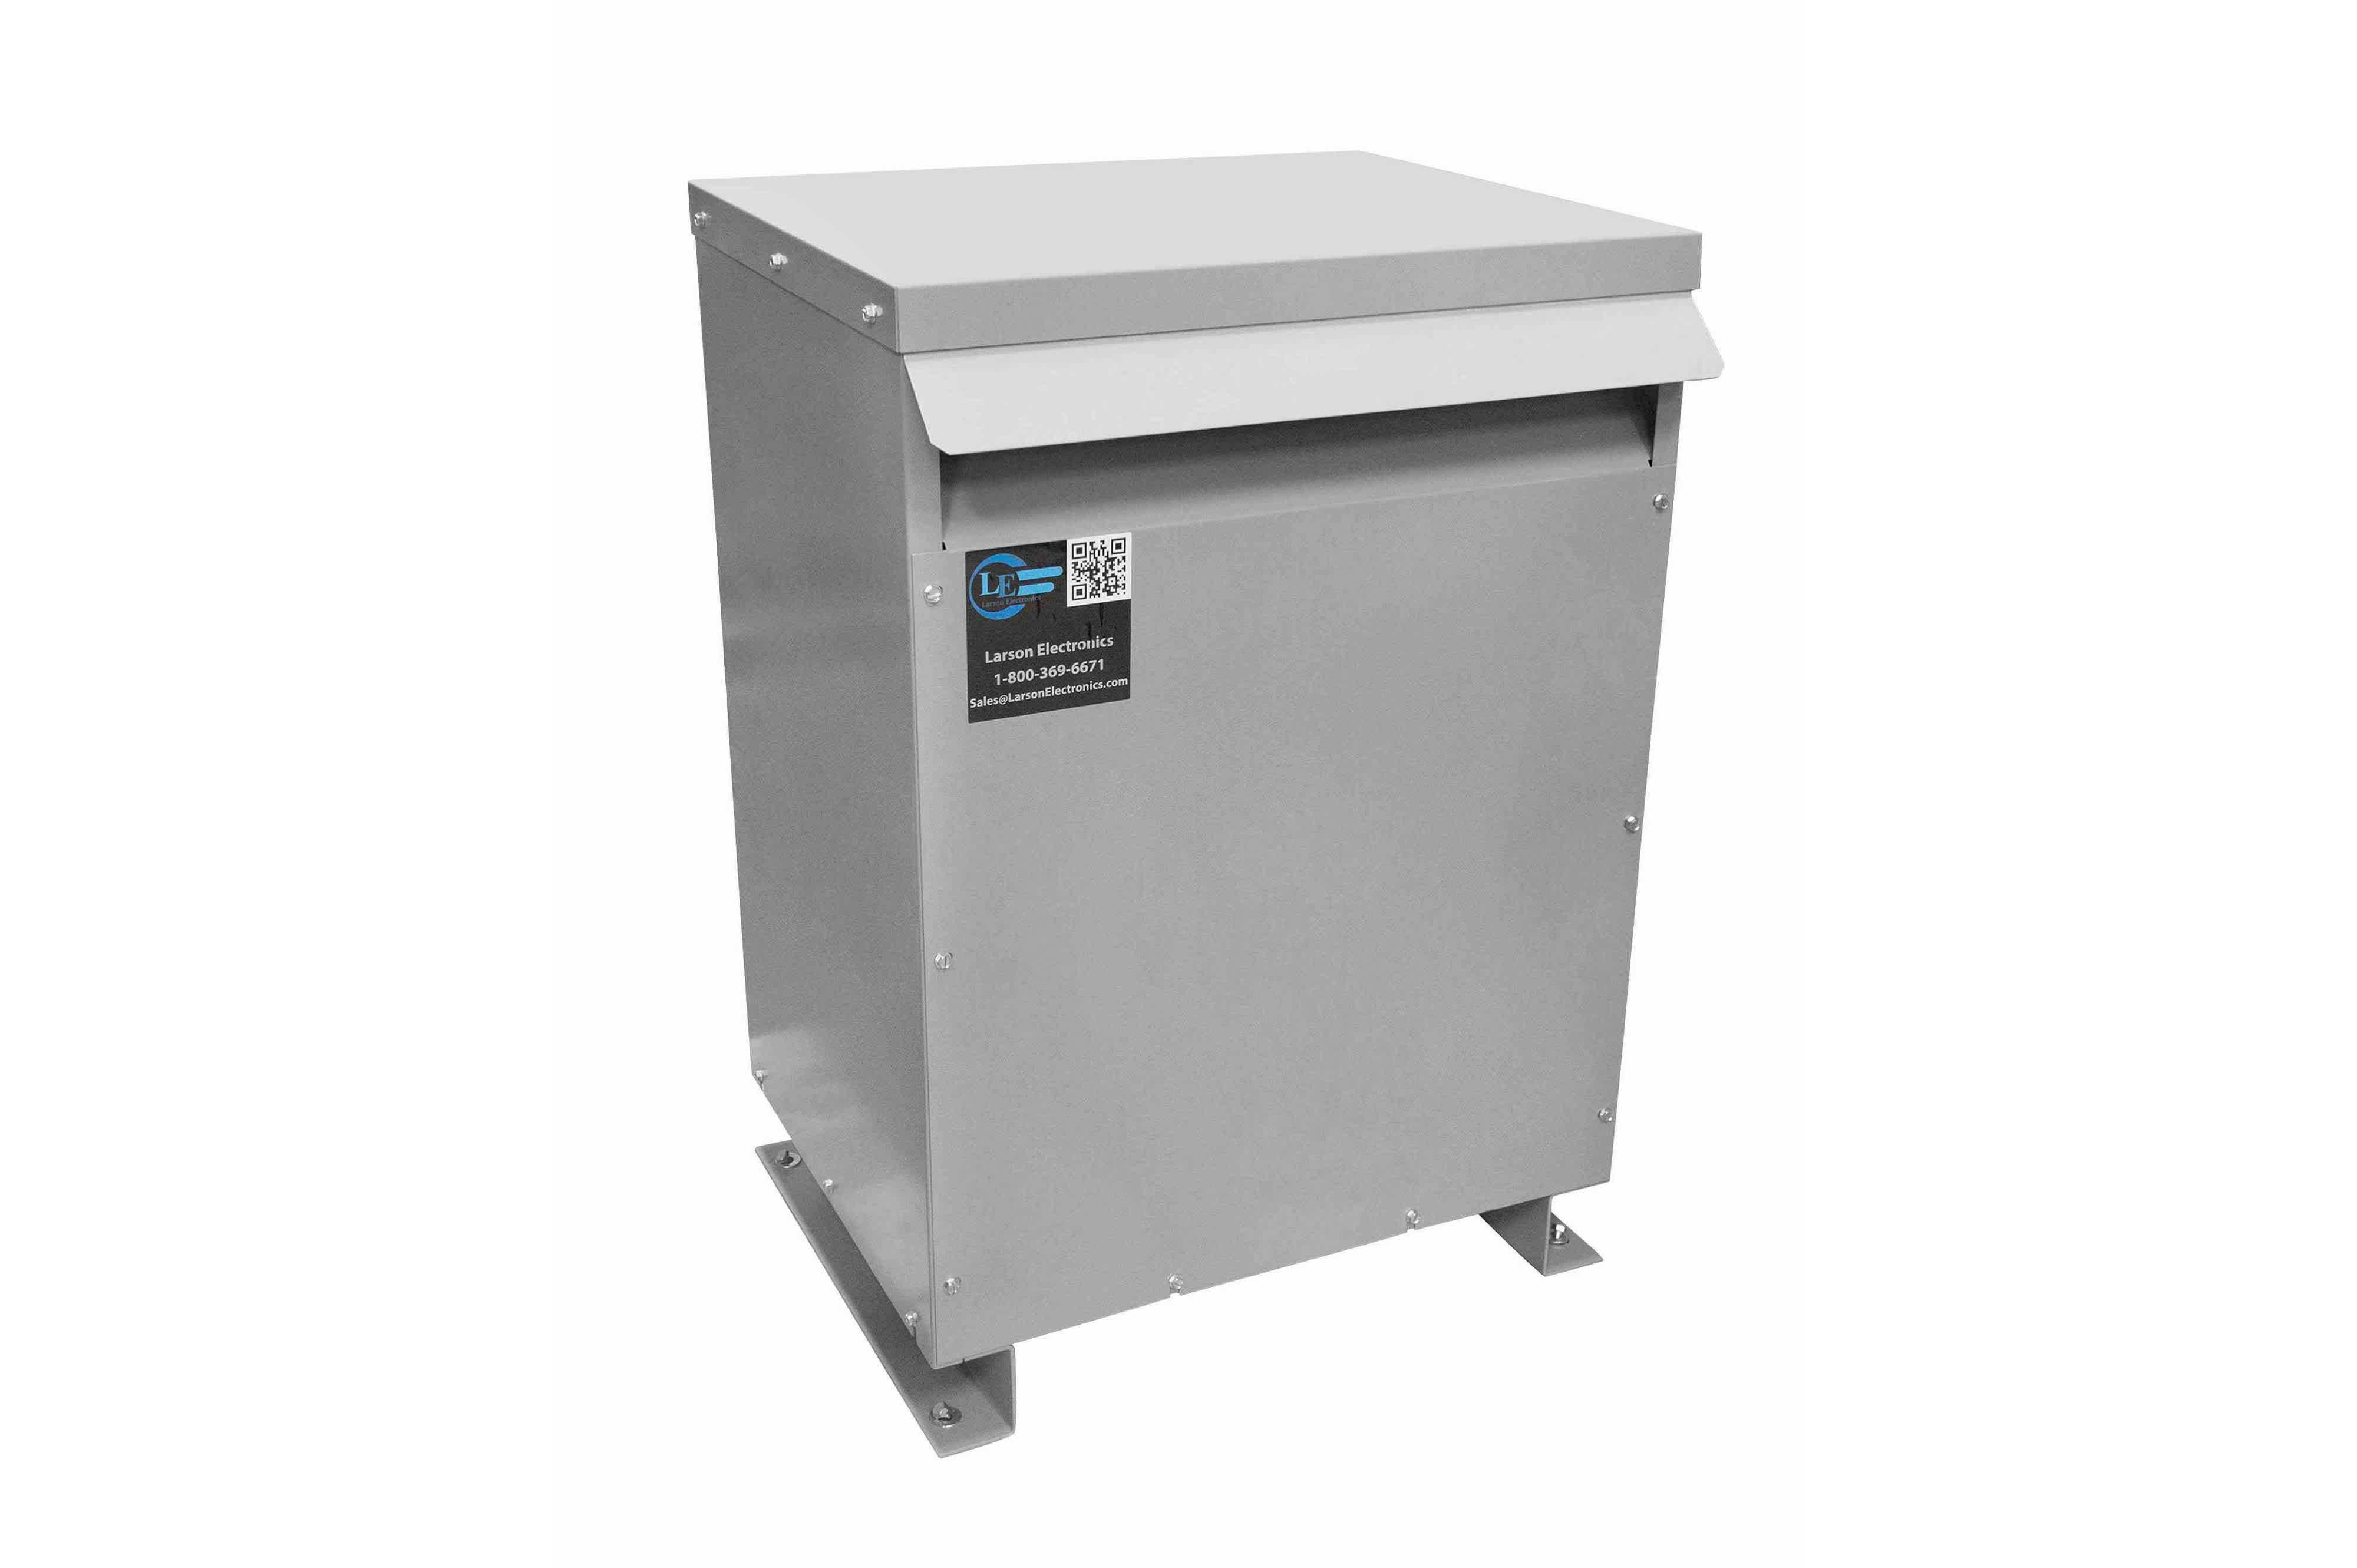 900 kVA 3PH Isolation Transformer, 220V Delta Primary, 208V Delta Secondary, N3R, Ventilated, 60 Hz